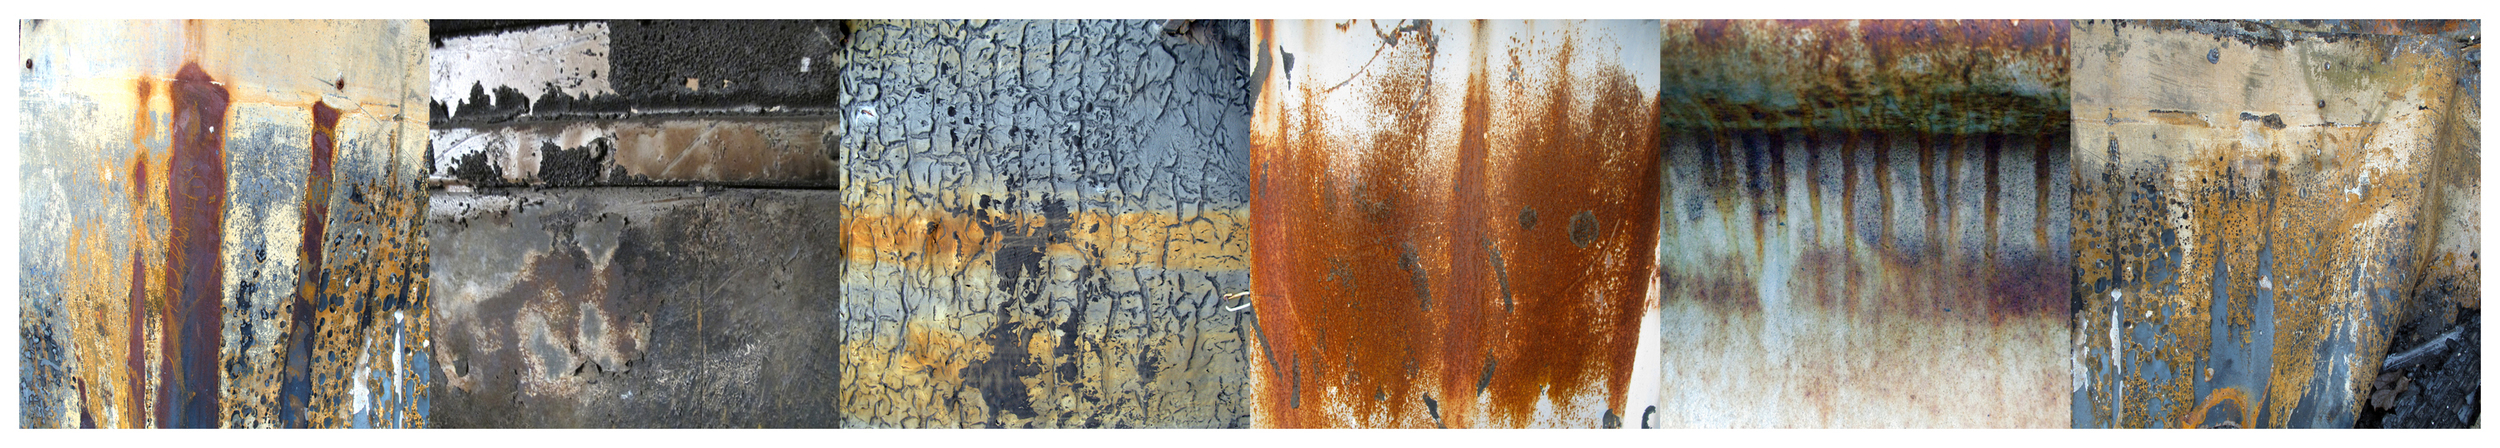 """Rust and Smoke"" 2014  18"" x 108"" digital print  variable sizes available"